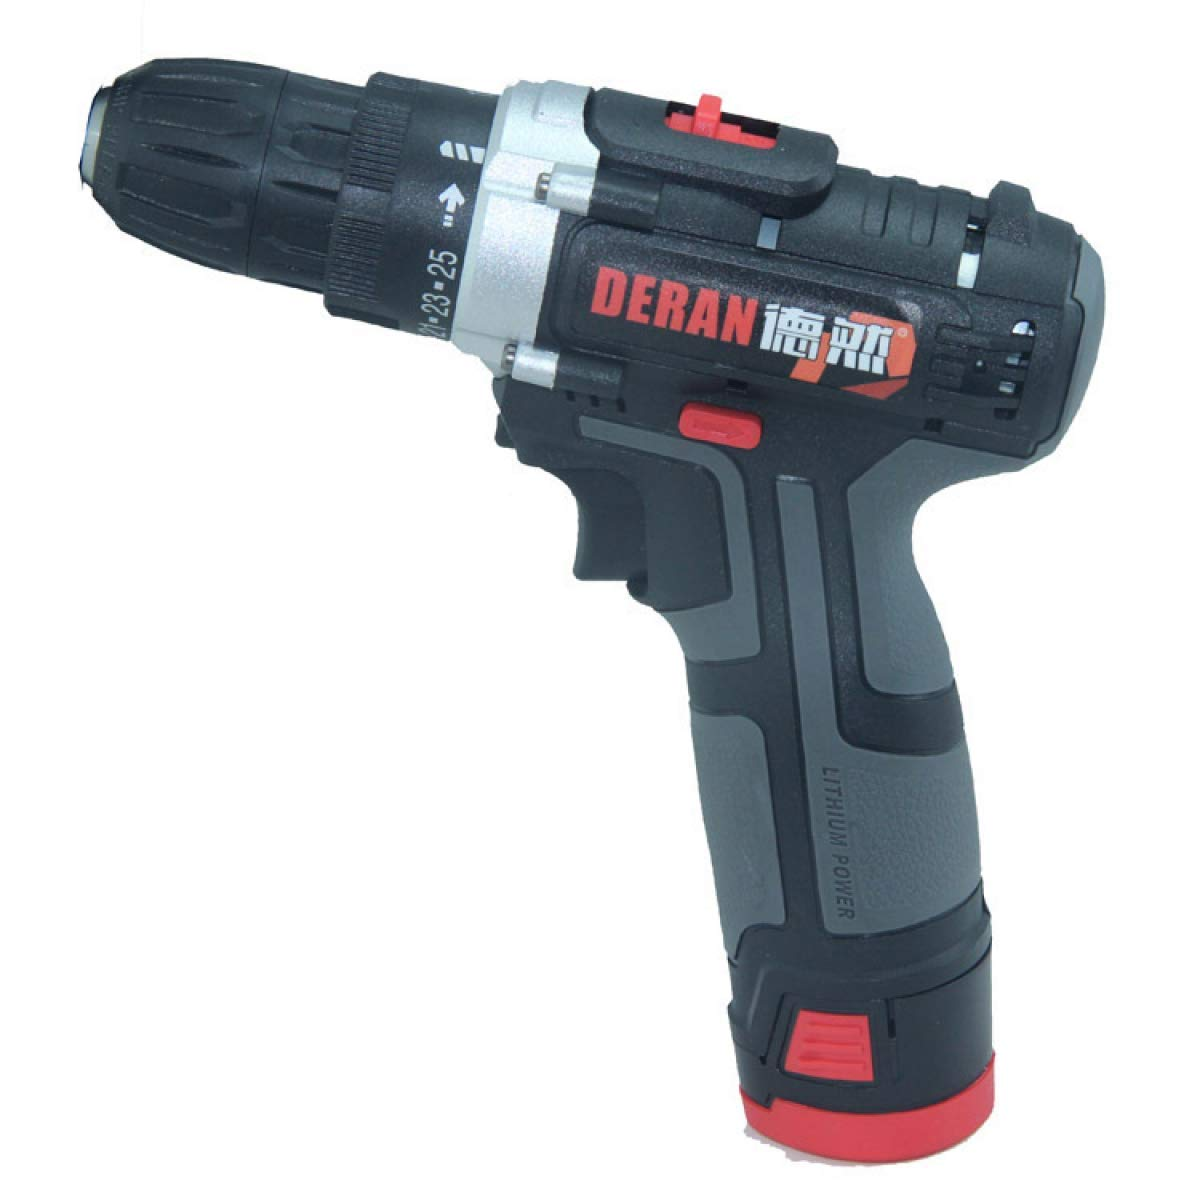 Cordless Drill Driver Lithium-Ion Combi Drill, Electric Screwdriver, Accessory Kit by XRPXRP